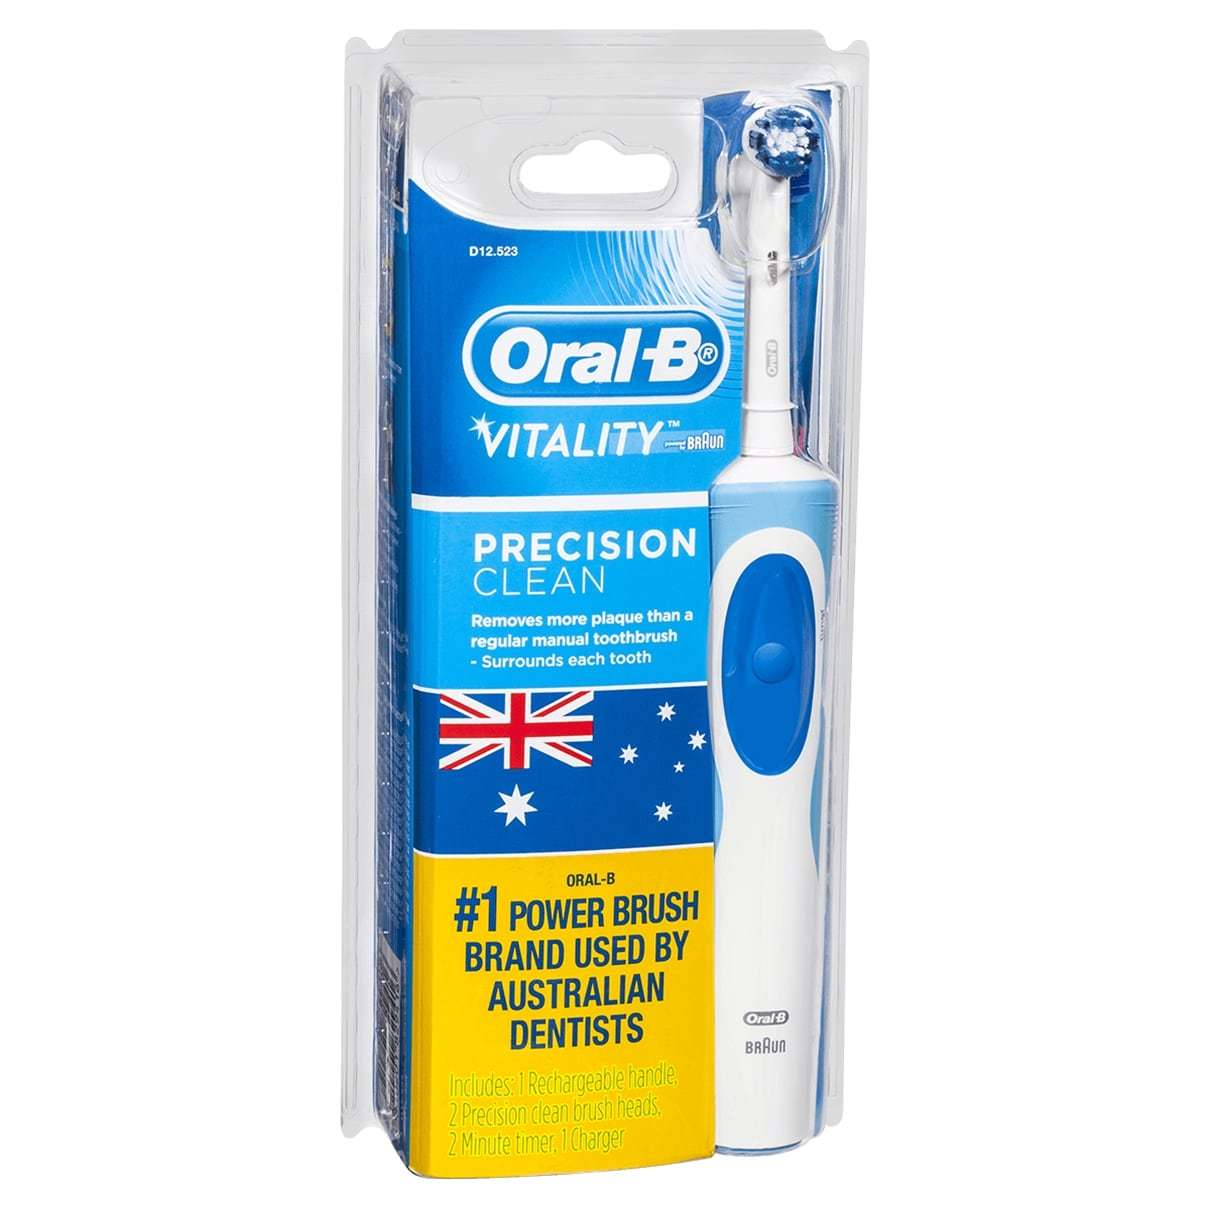 Oral-B: Vitality Power Brush Precision Clean image